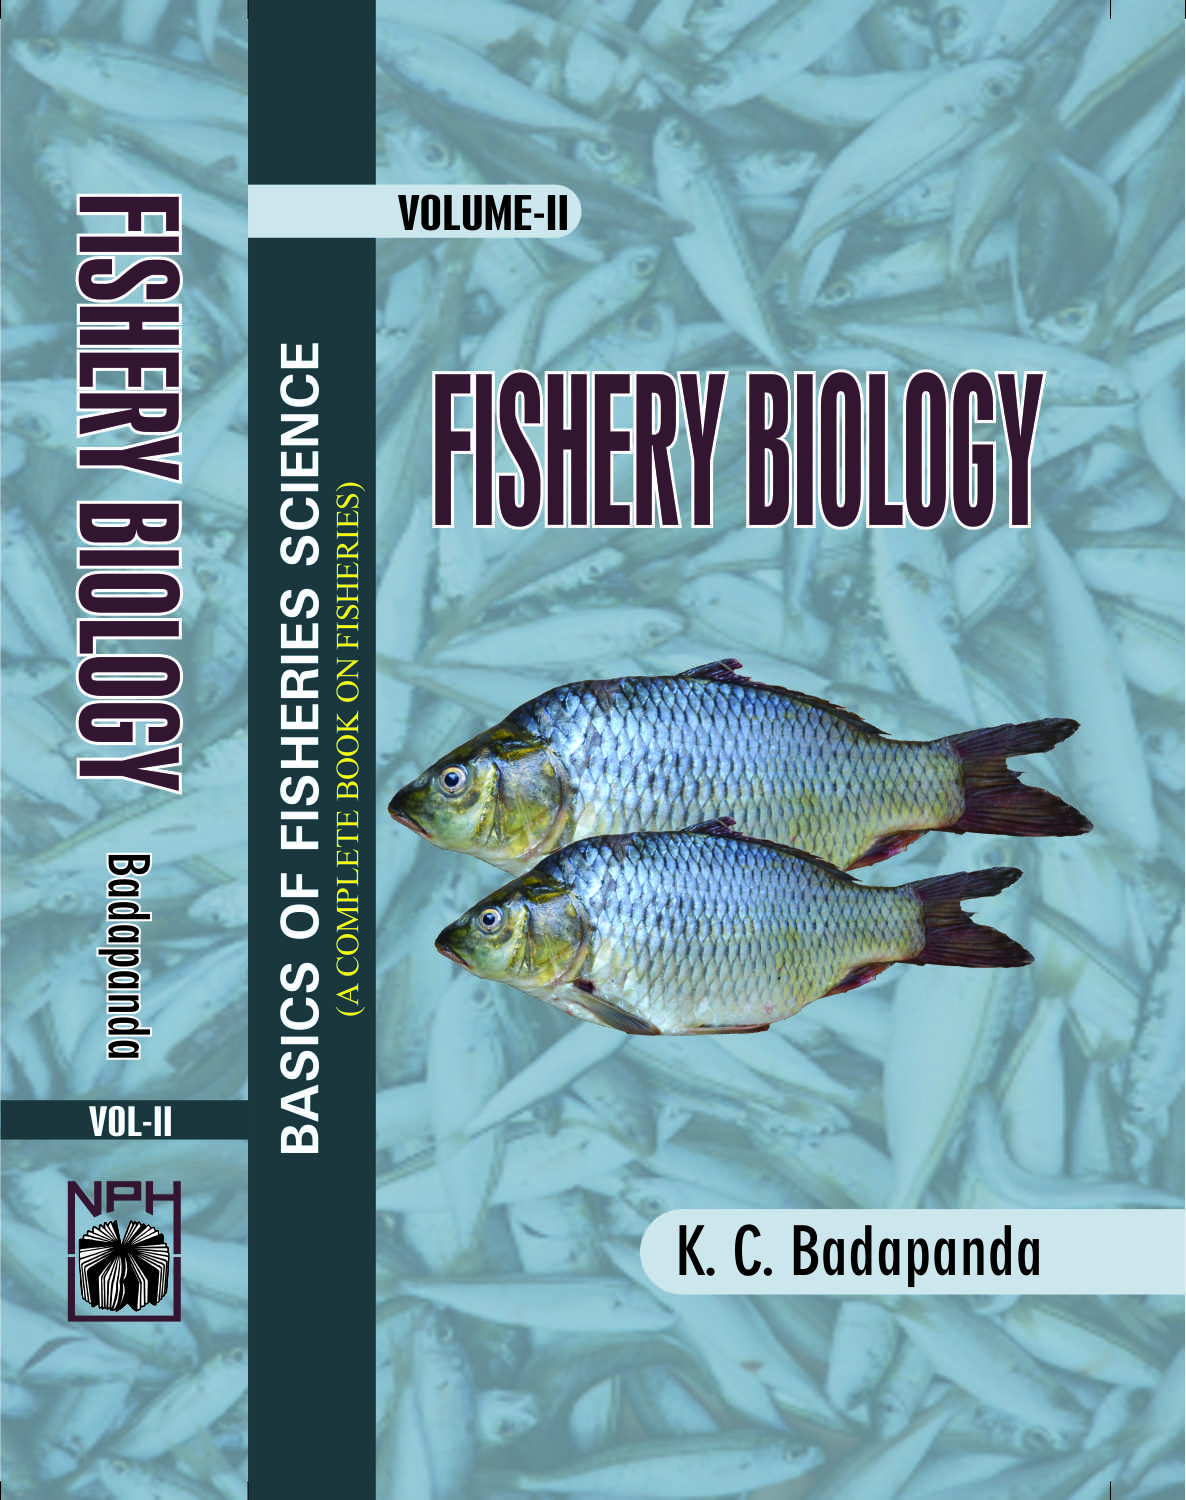 Basics of Fisheries Science : Vol II Fisheries Biology